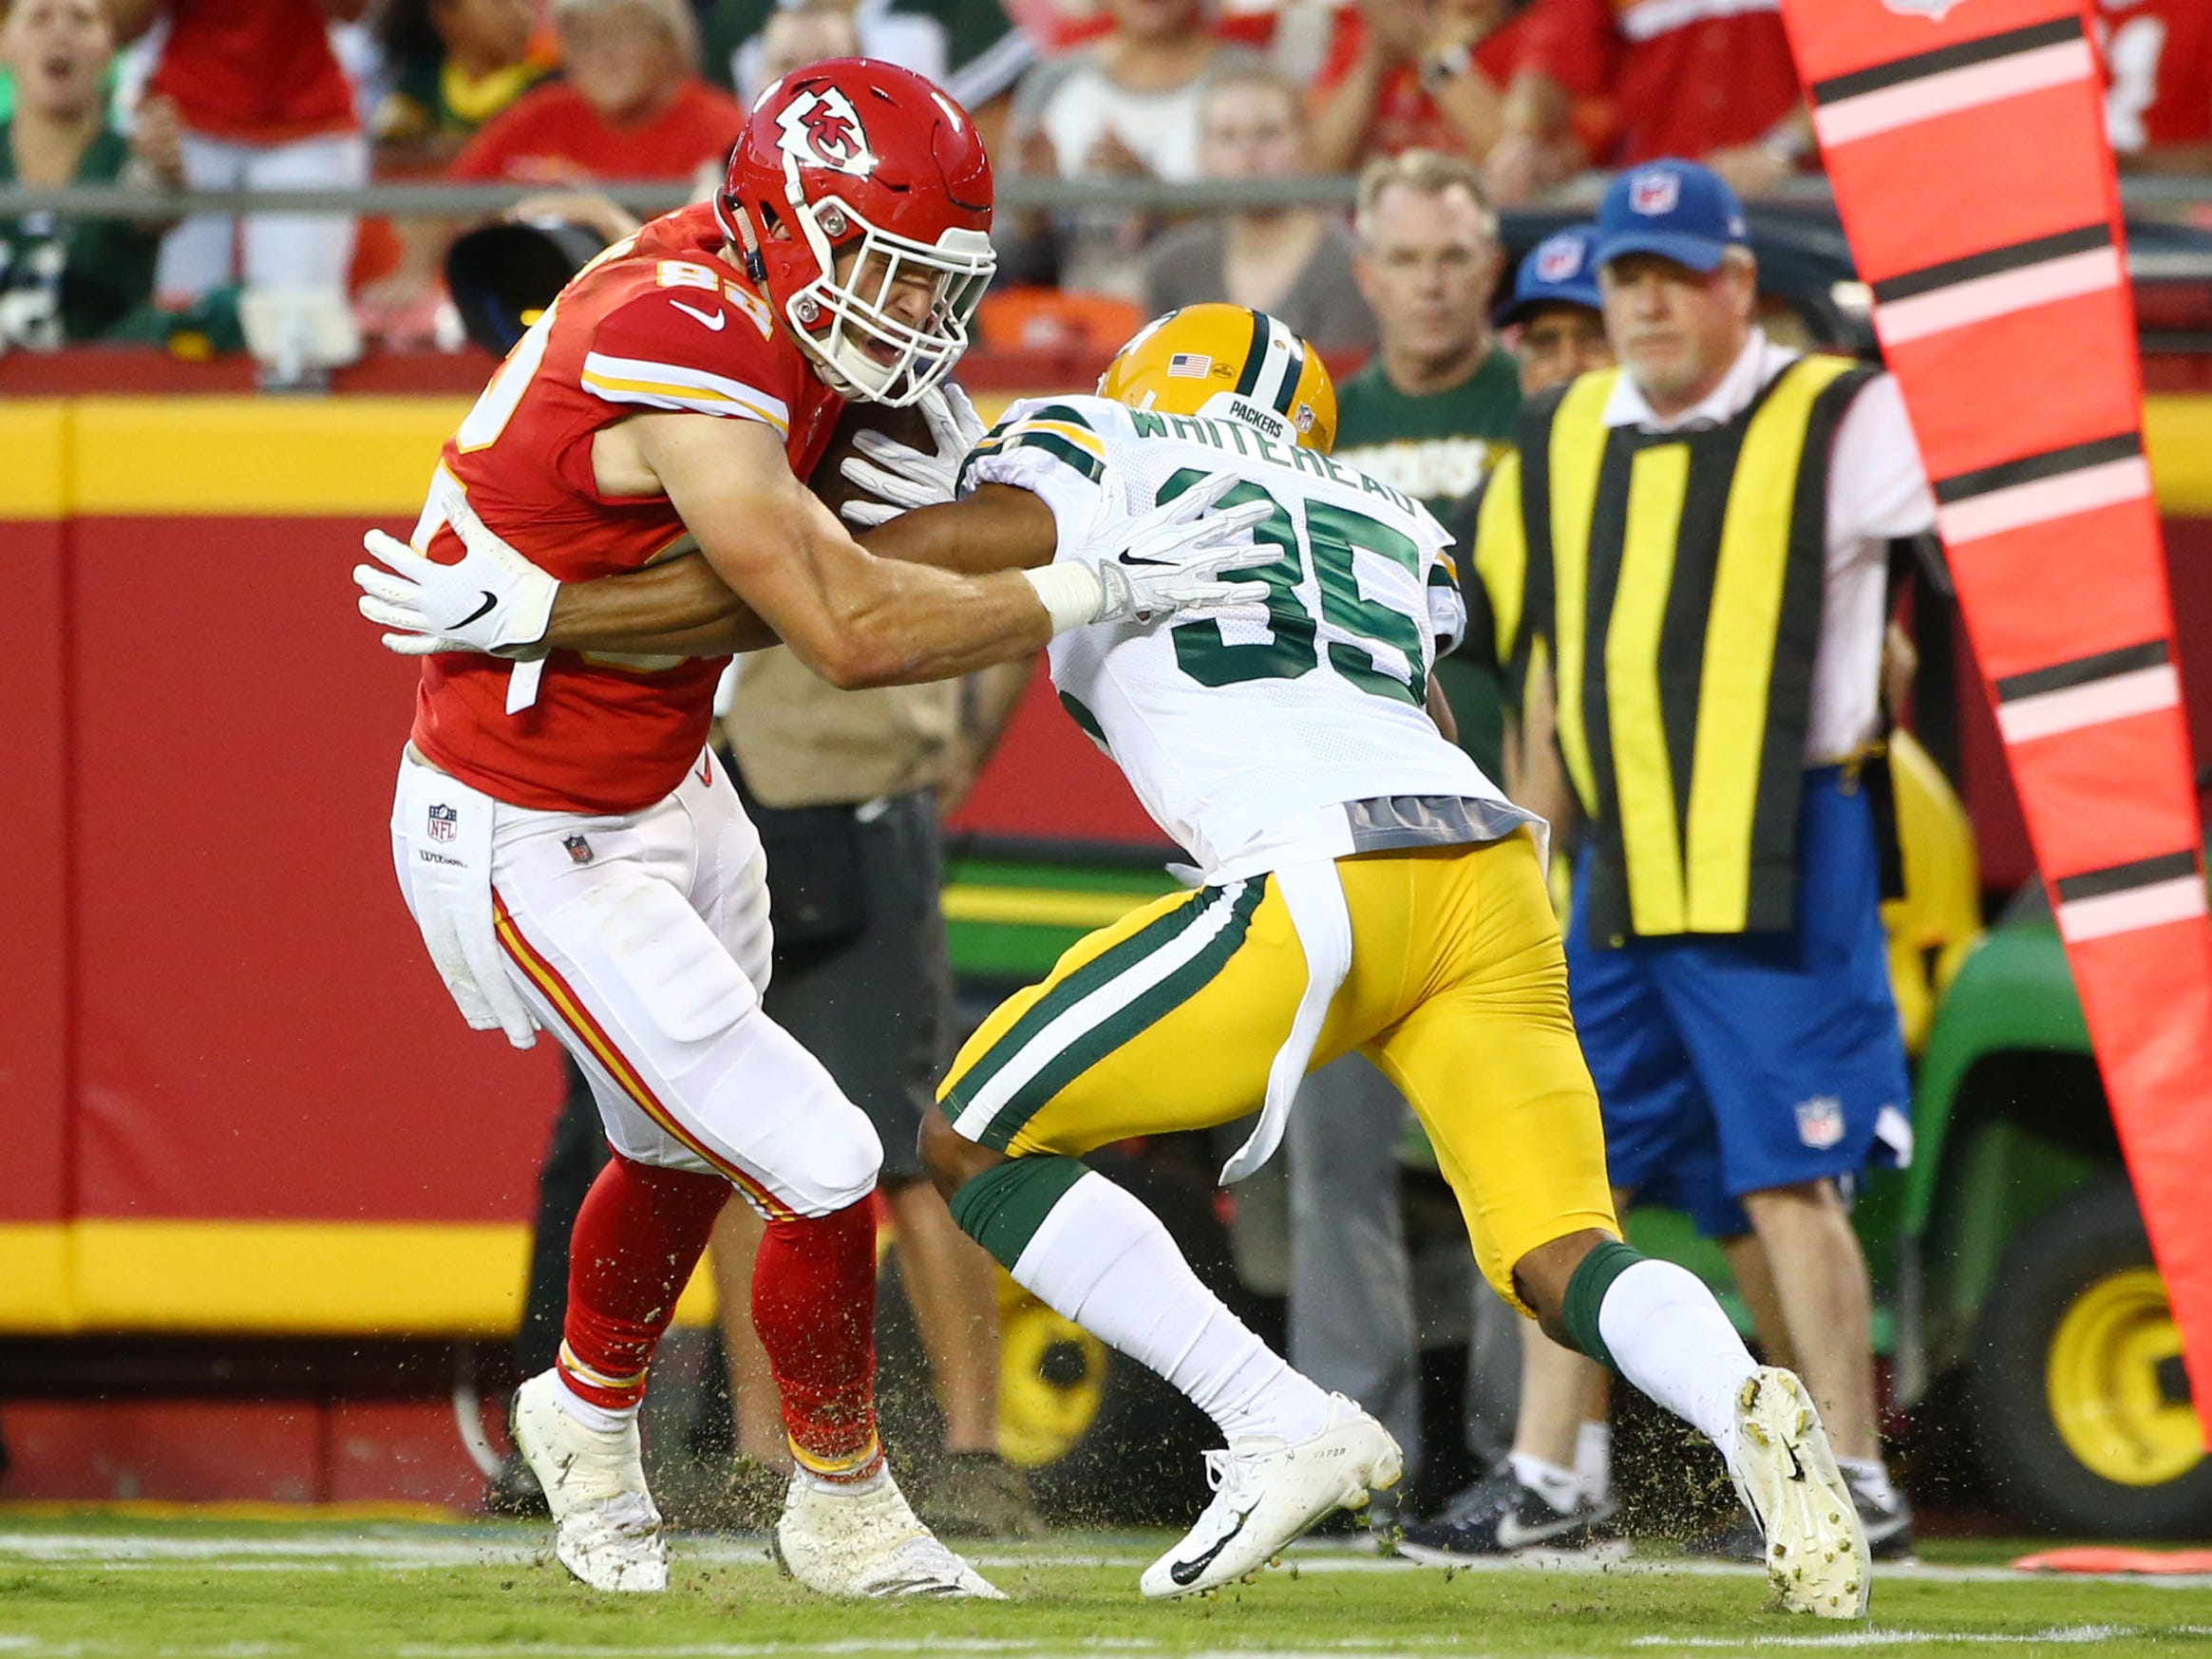 Aug 30, 2018; Kansas City, MO, USA; Kansas City Chiefs tight end Alex Ellis (82) evades Green Bay Packers safety Jermaine Whitehead (35) in the first half at Arrowhead Stadium. Sports